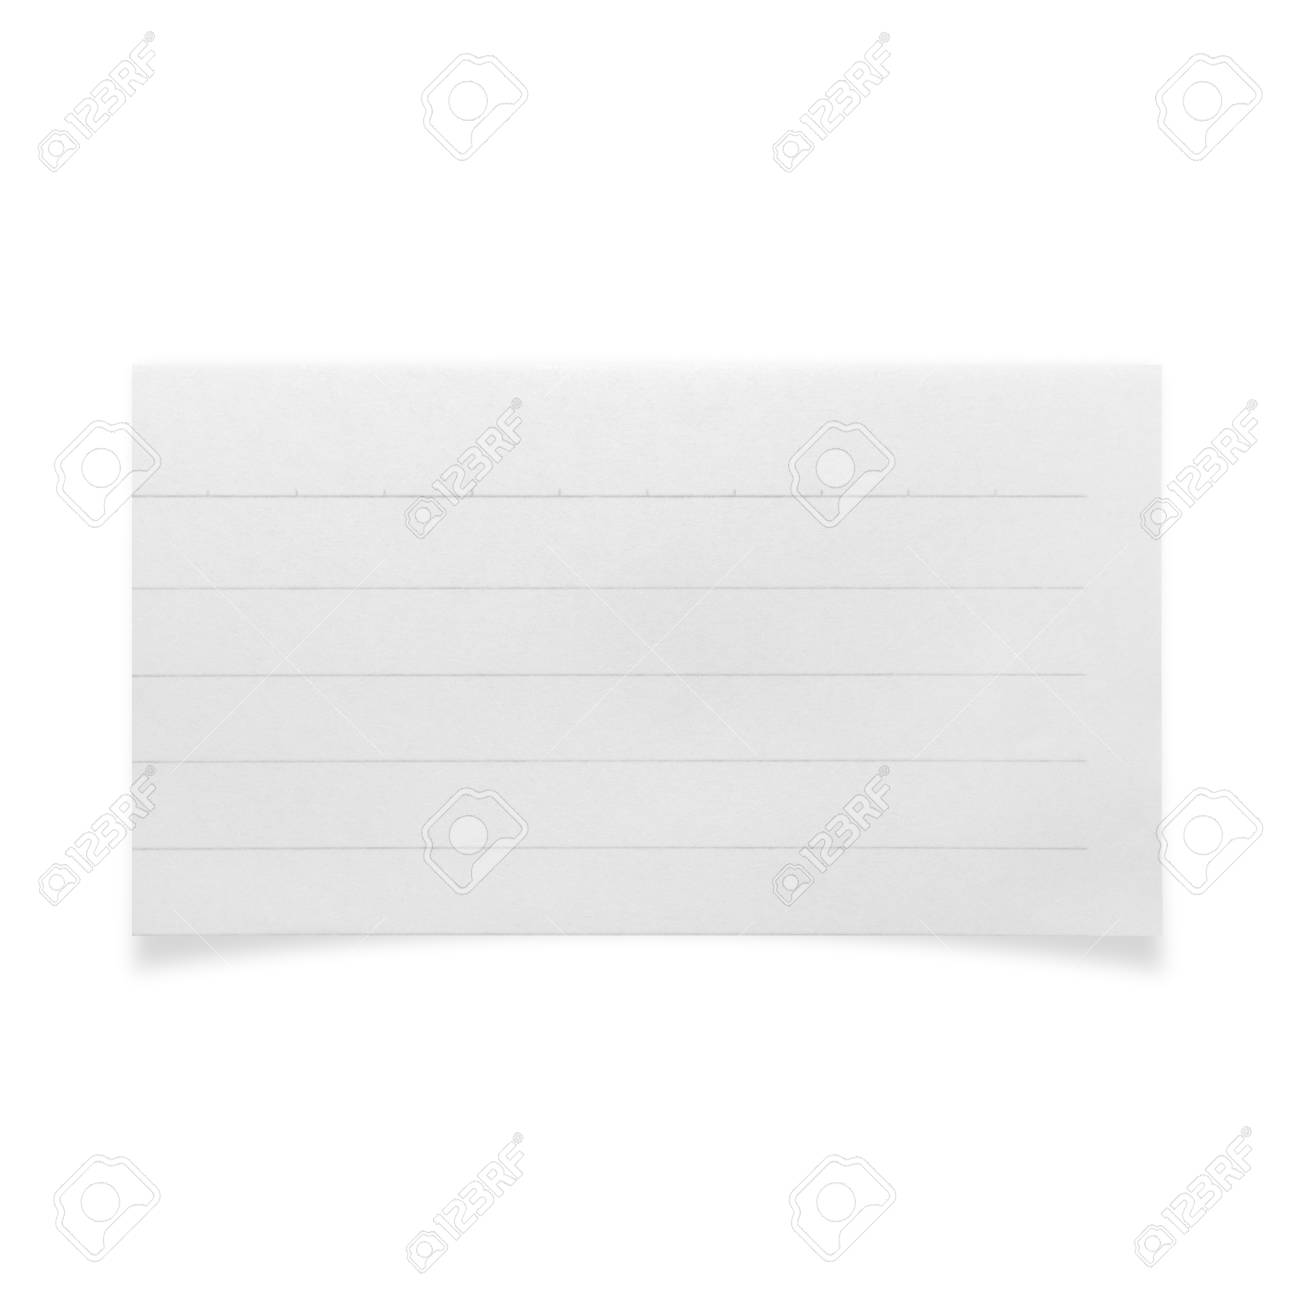 Bright White Paper Blank On White Background Stock Photo Picture And Royalty Free Image Image 31911574